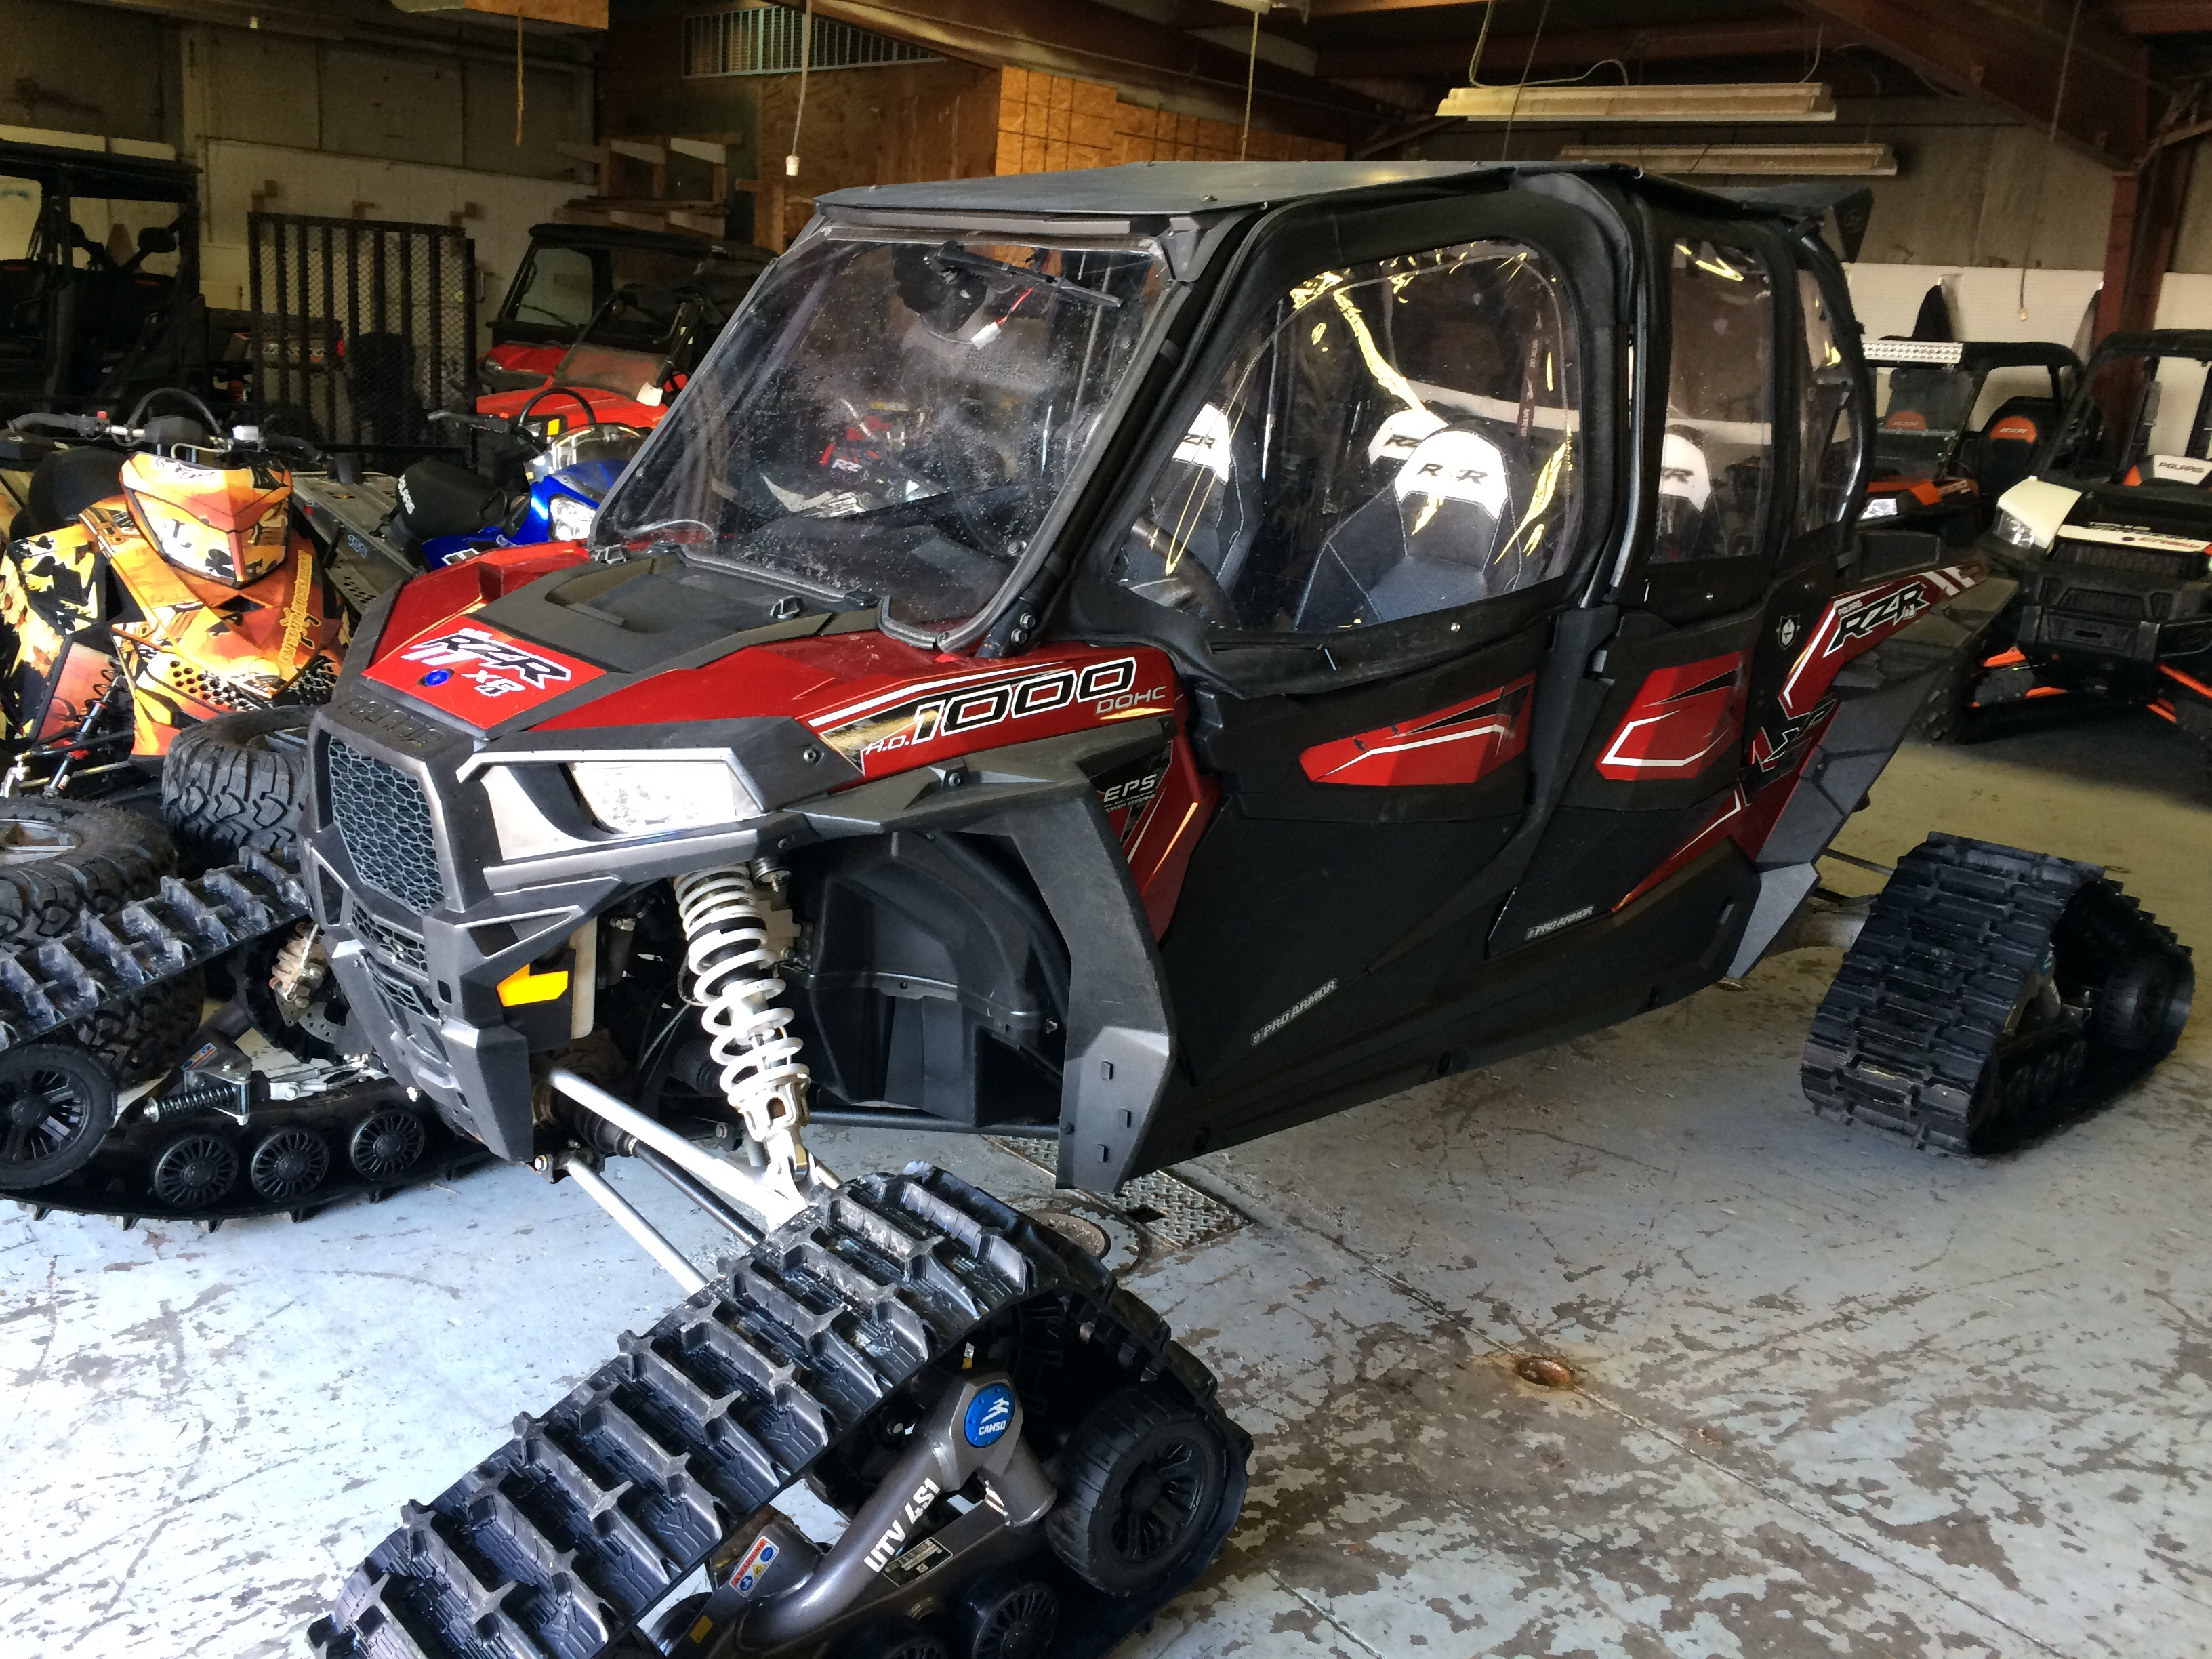 2016 Polaris Rzr 1000 Xp 4 Seater With Tracks 20 600 Sold